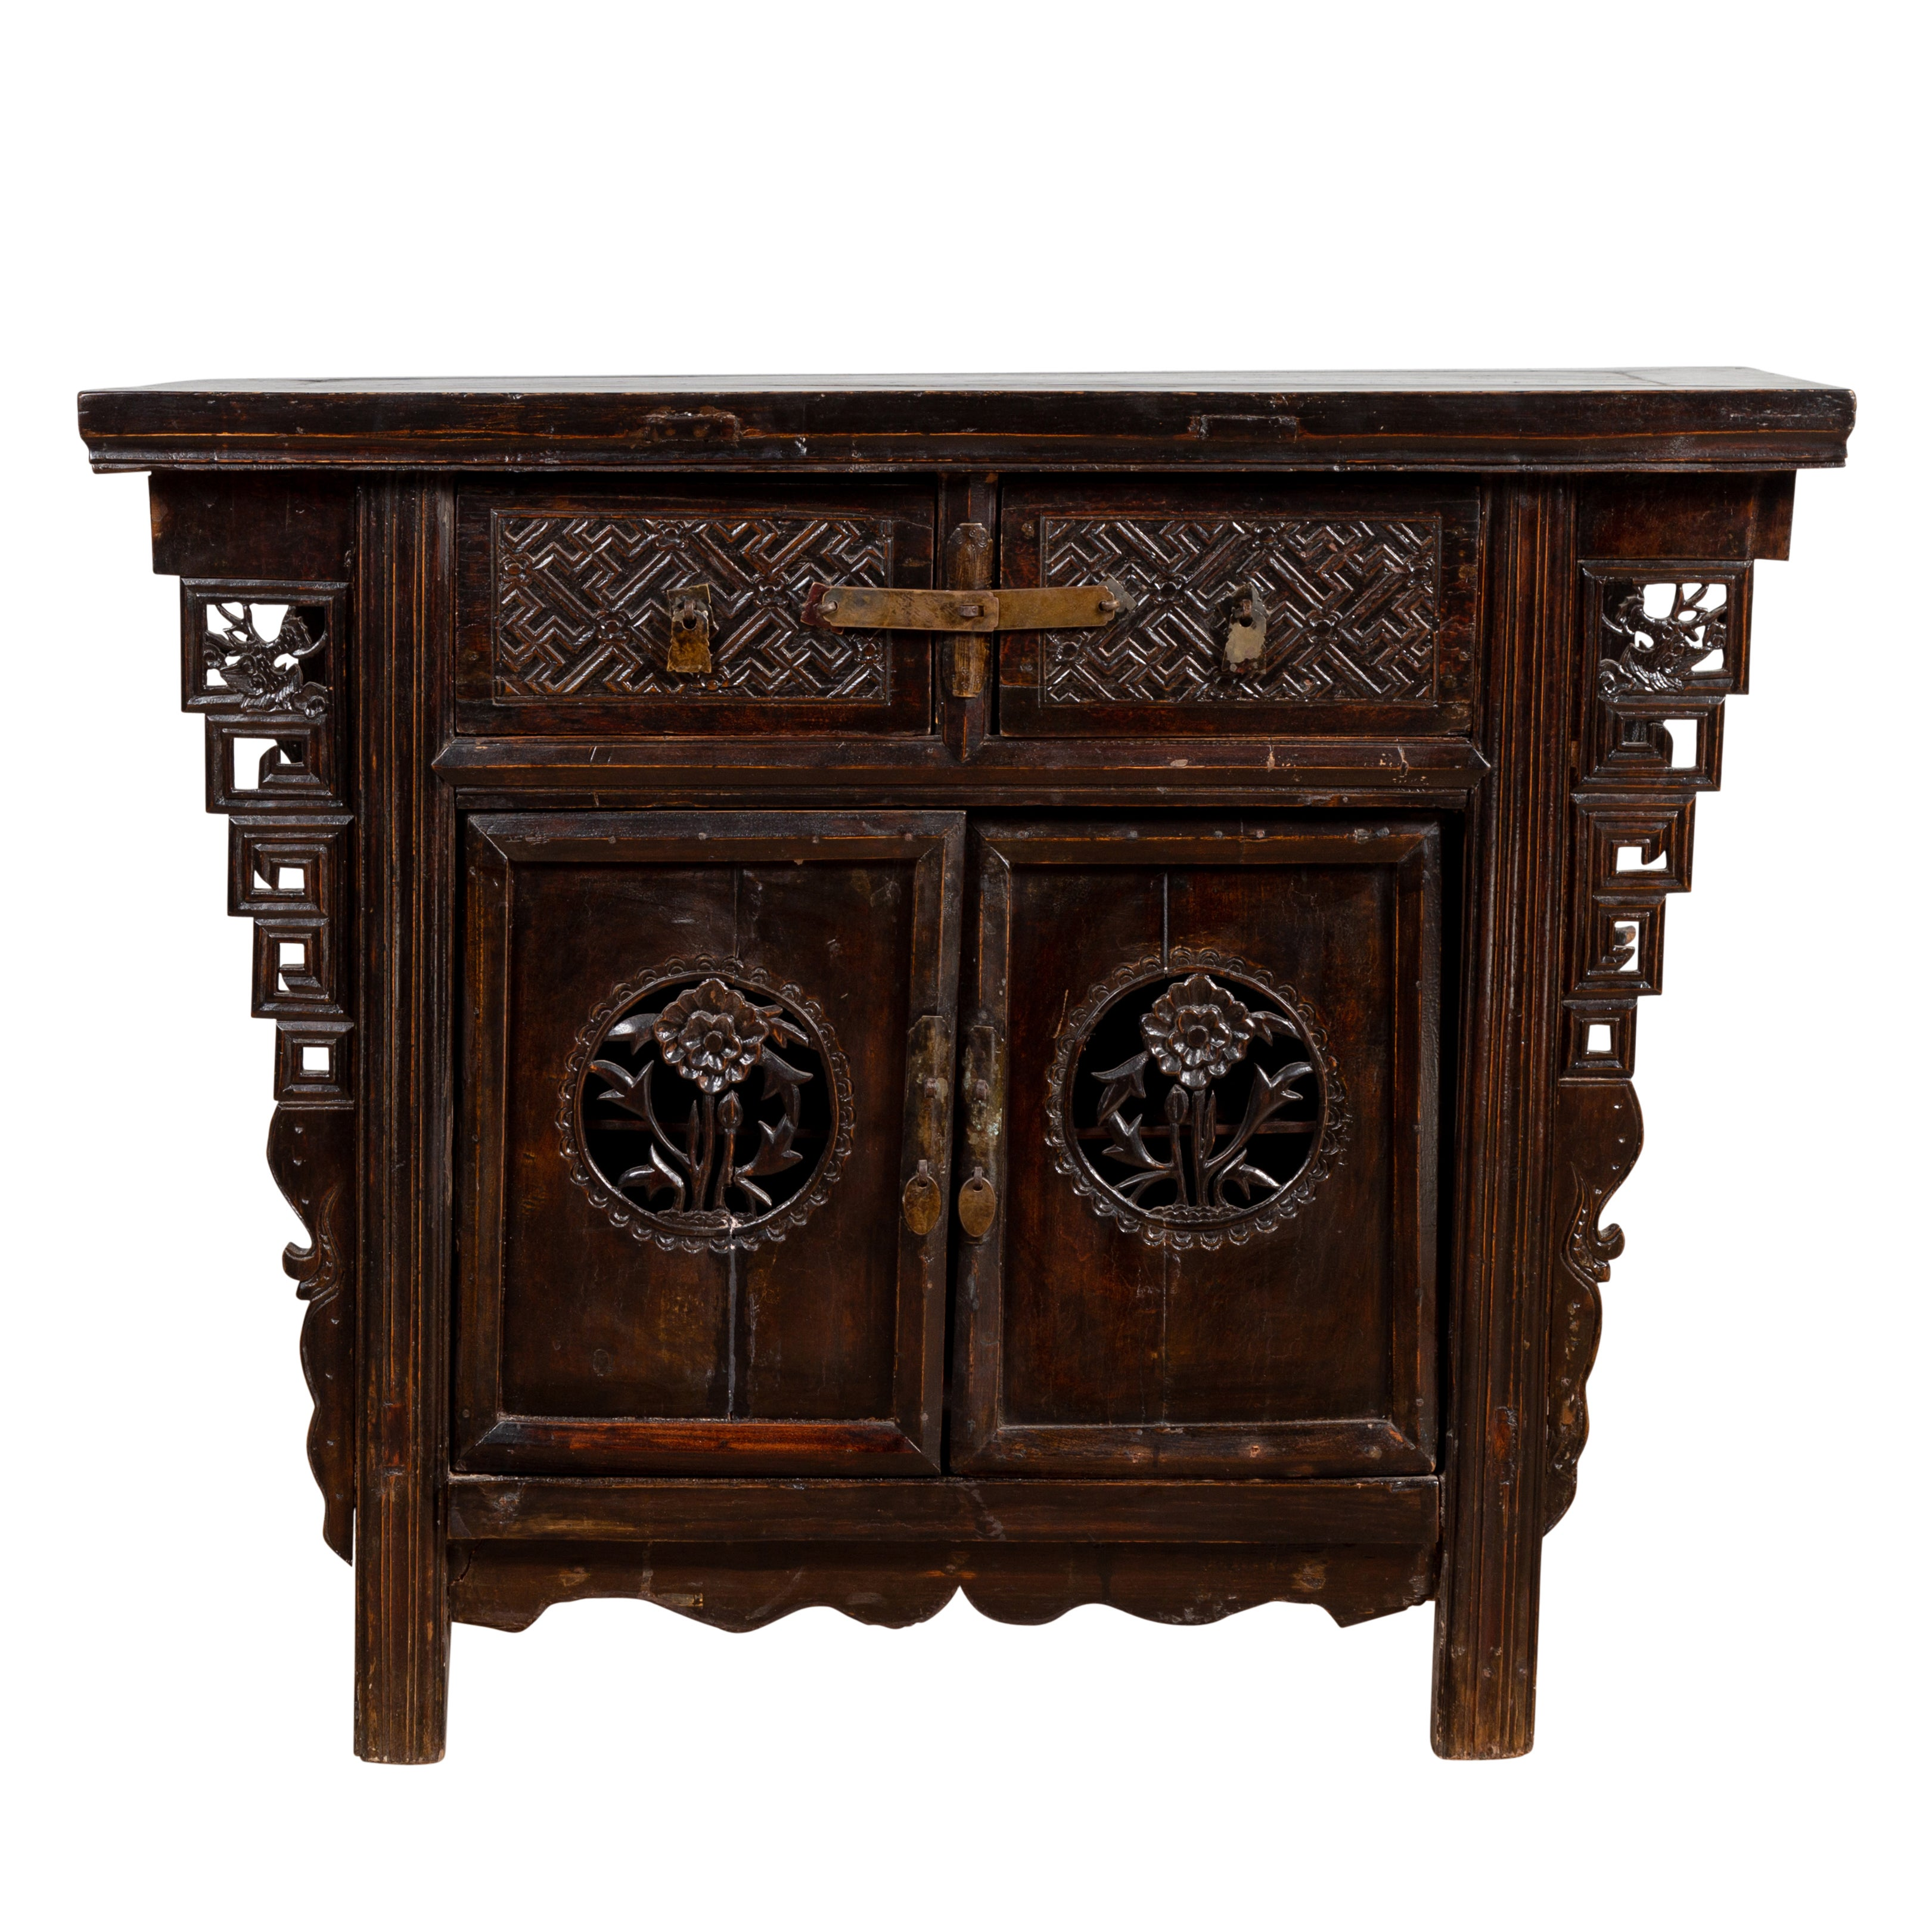 Chinese Ming Dynasty Style Butterfly Cabinet with Carved Spandrels and Doors